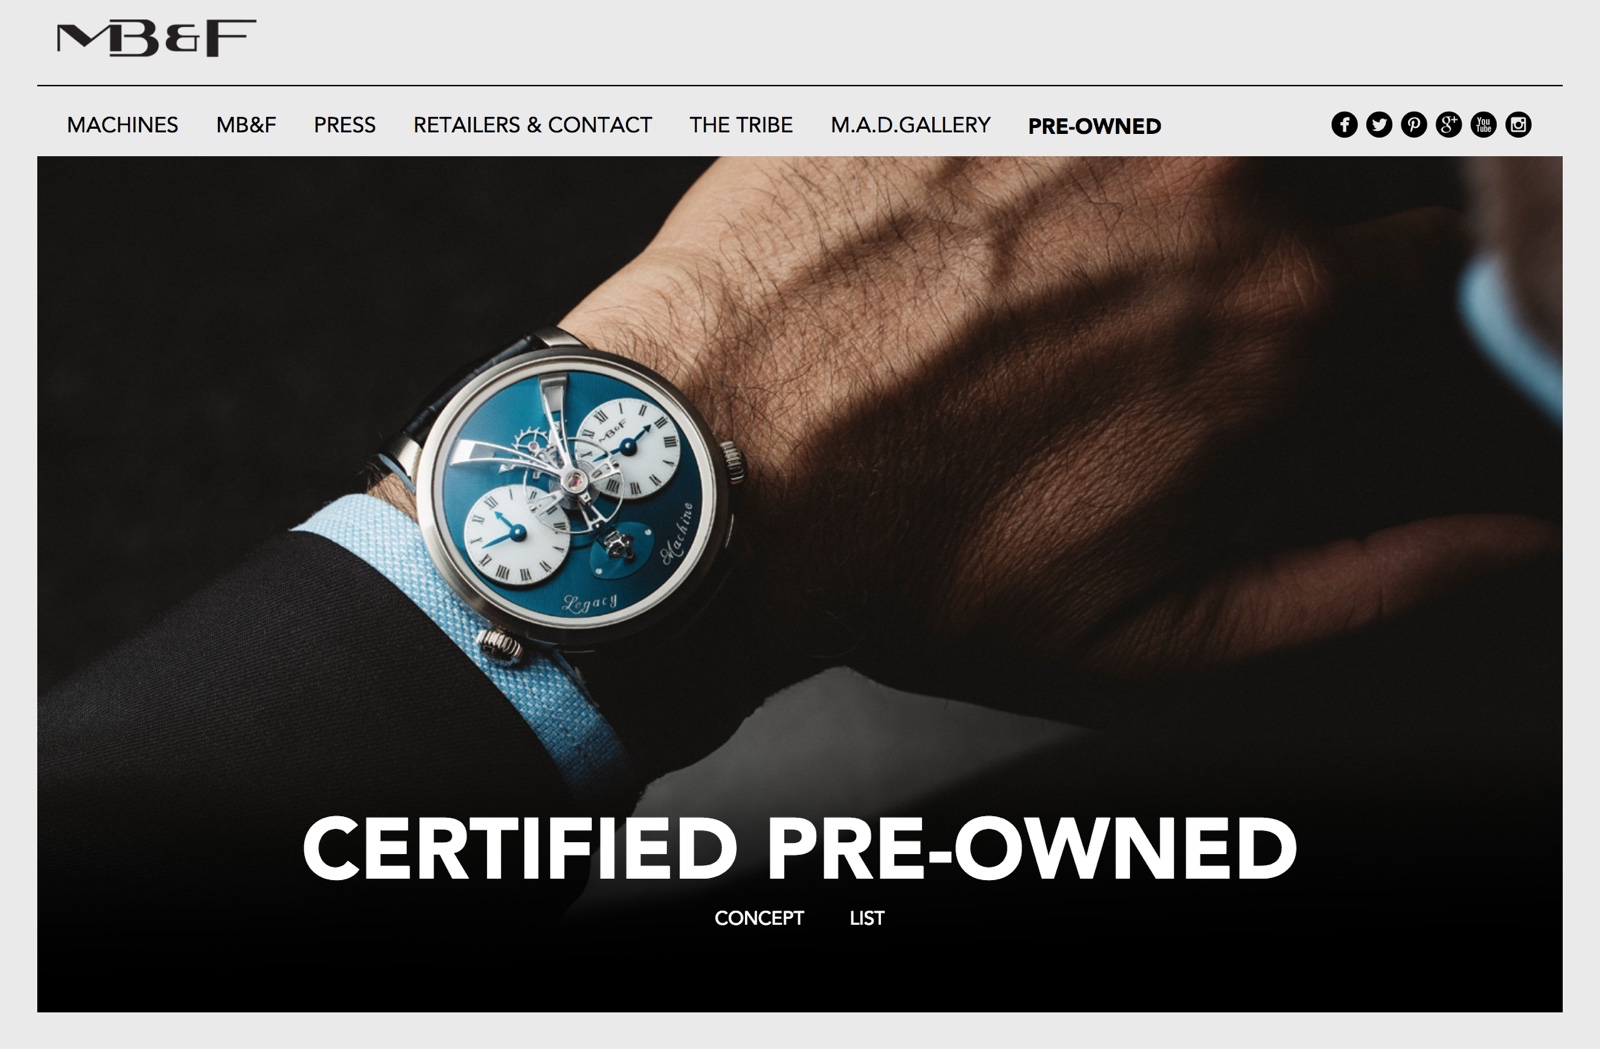 MB&F Certified Pre-Owned 4